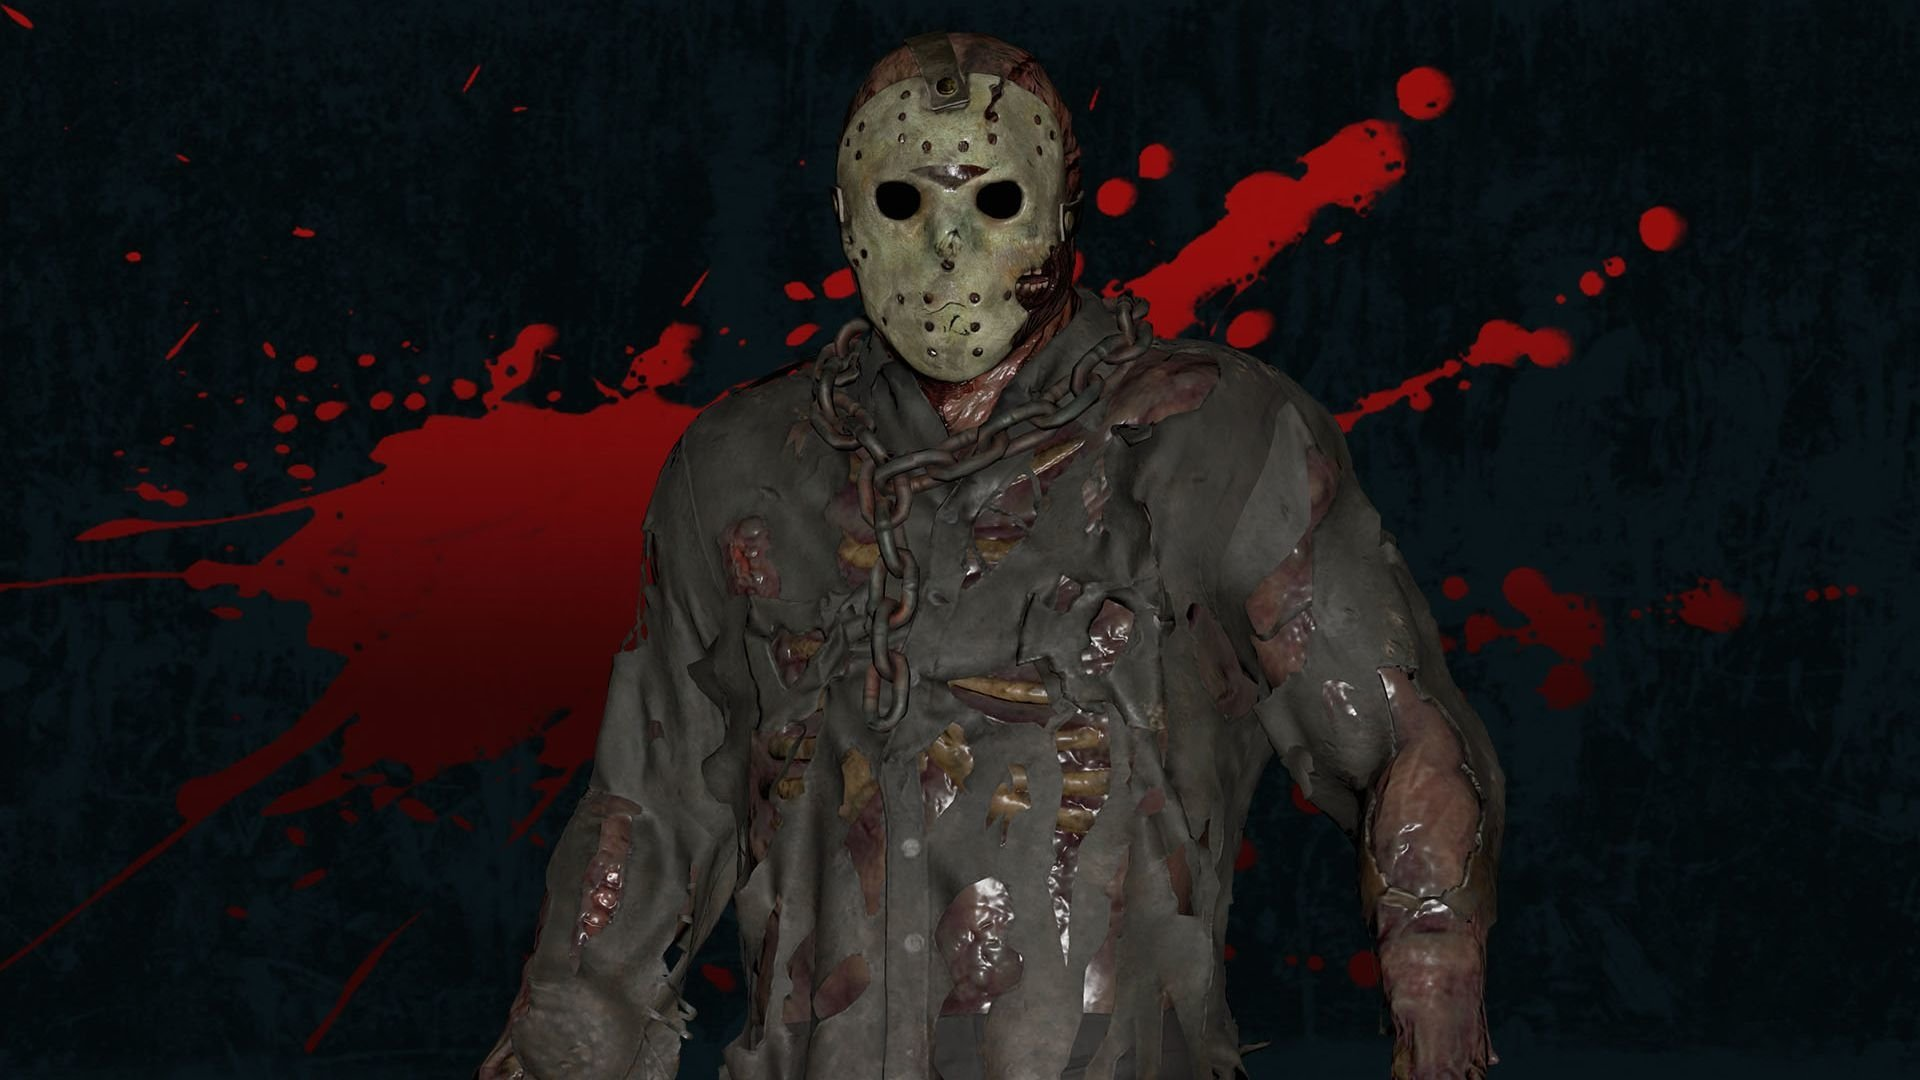 Friday The 13th The Game Wallpaper: Friday The 13th The Game HD Wallpapers